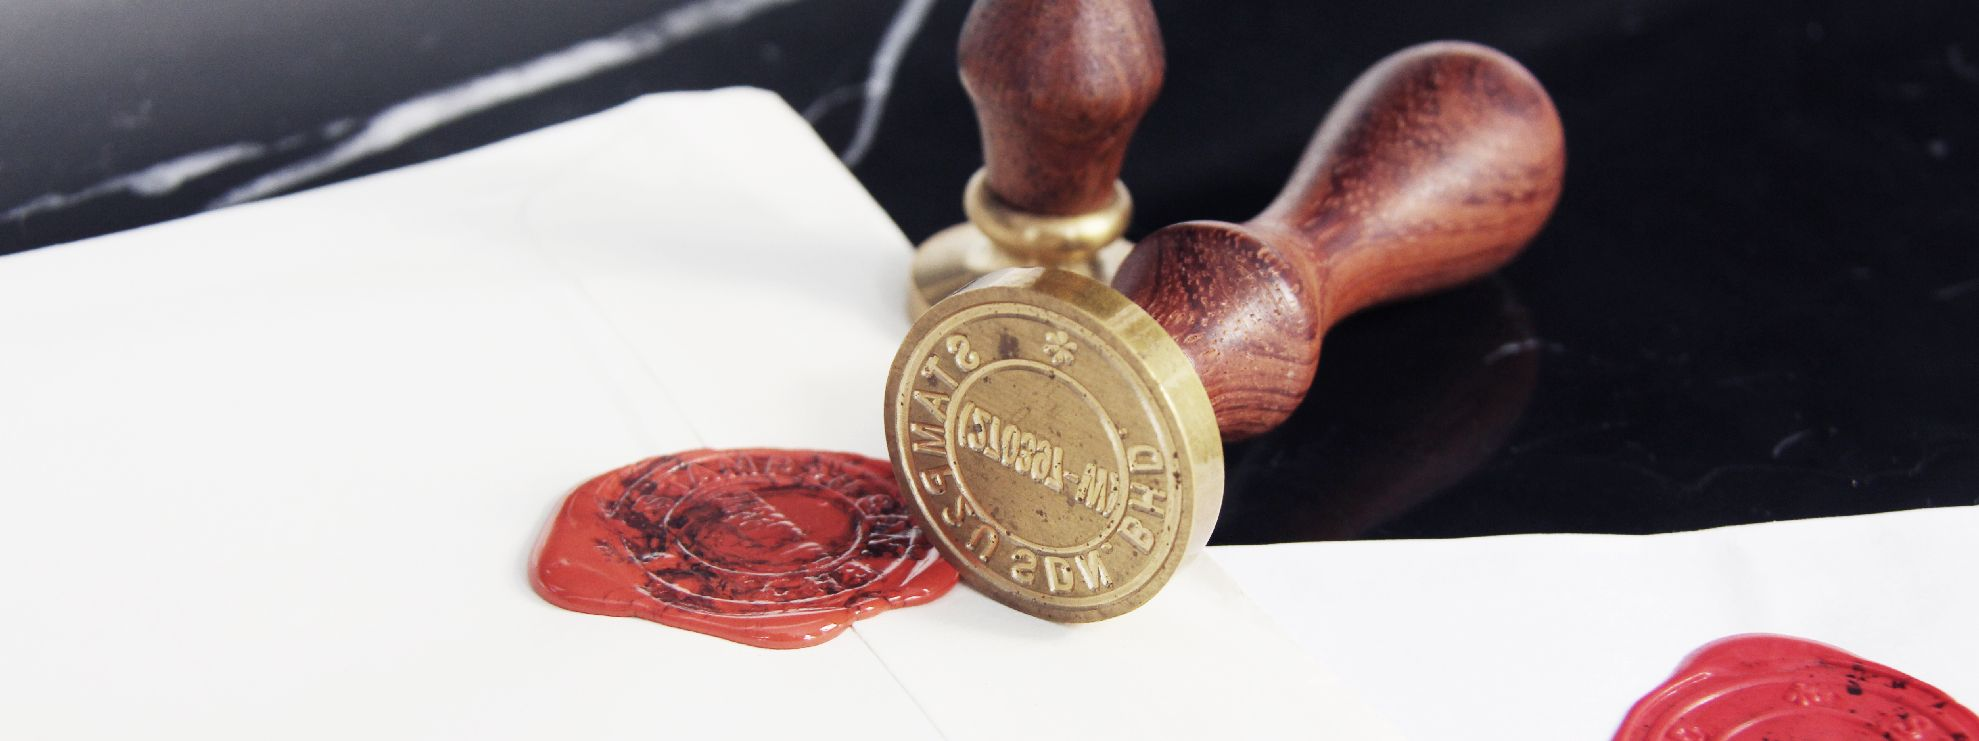 stamp2u_wax_seal_3